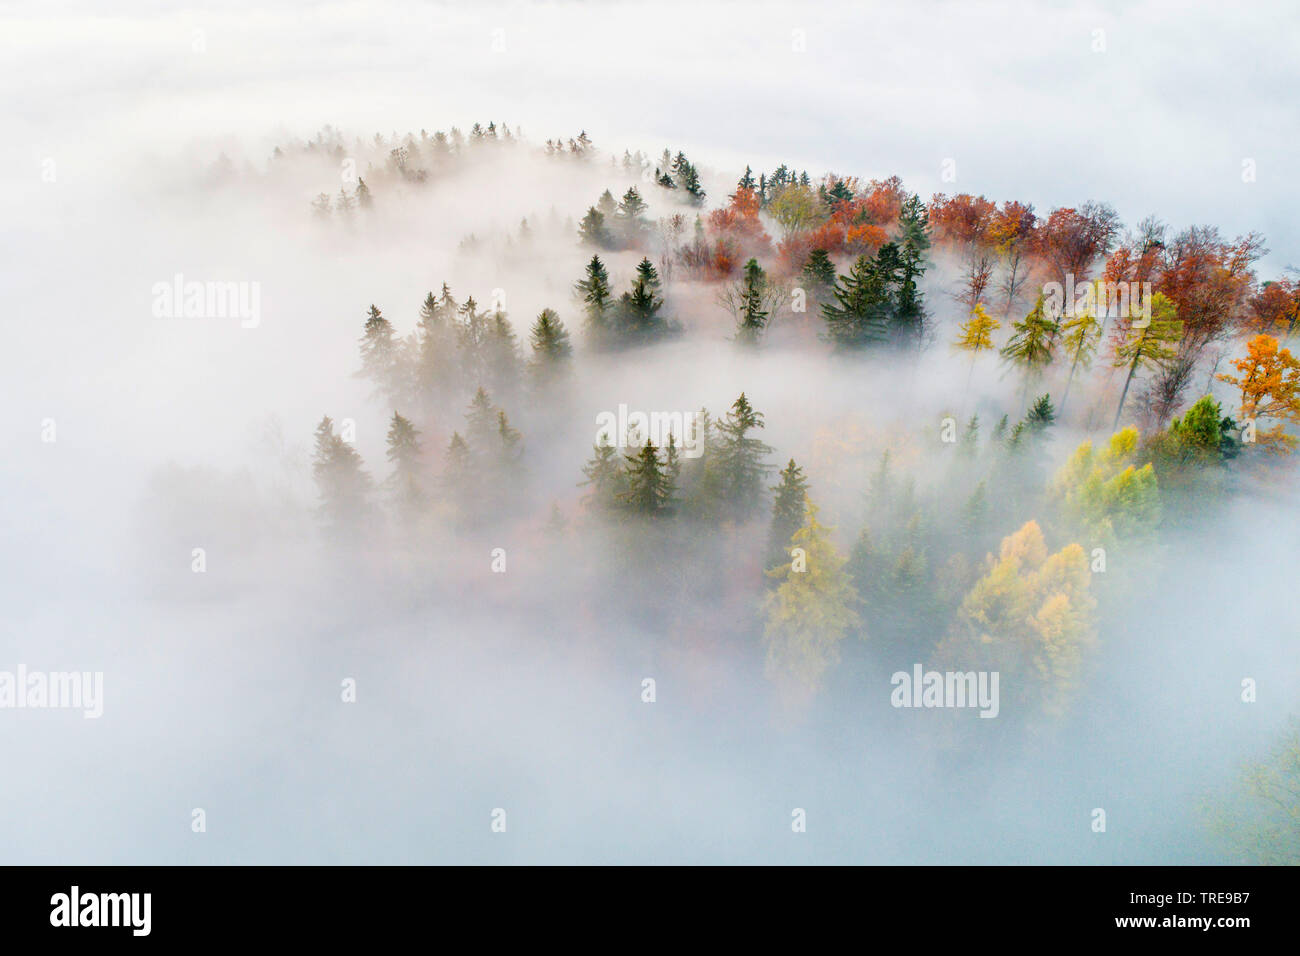 Mischwald mit Nebelschwaden, Drohnenaufnahme, Schweiz, Zuercher Oberland | mixed forest with mist, drone picture, Switzerland, Zuercher Oberland | BLW - Stock Image